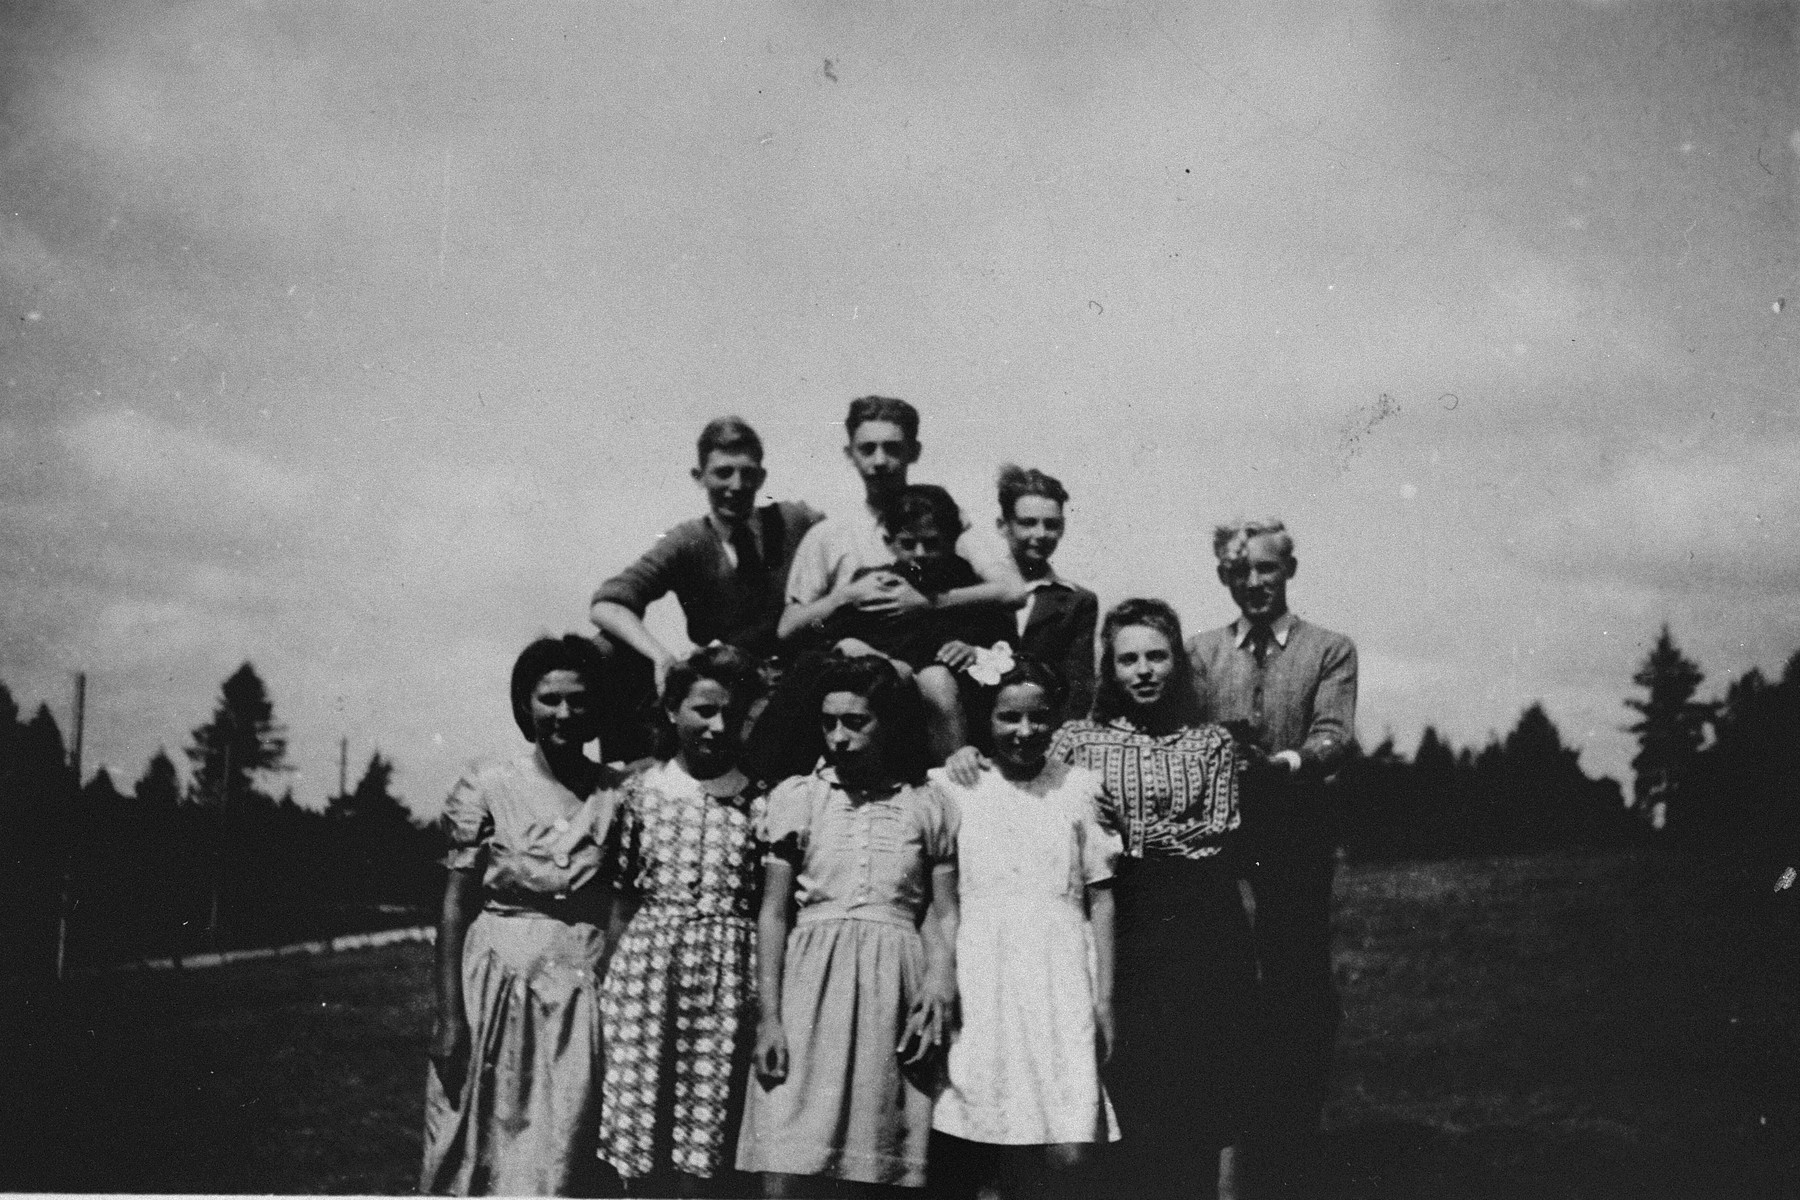 Group portrait of Jewish and non-Jewish refugee children sheltered in various public and private homes in Le Chambon-sur-Lignon during World War II.  Among those pictured are: Antonio Cascarosa (top row, center), a child of Spanish Civil war refugees, Pierre (top row, left), a young deserter from the German army, and an unnamed Czech youth (far right).